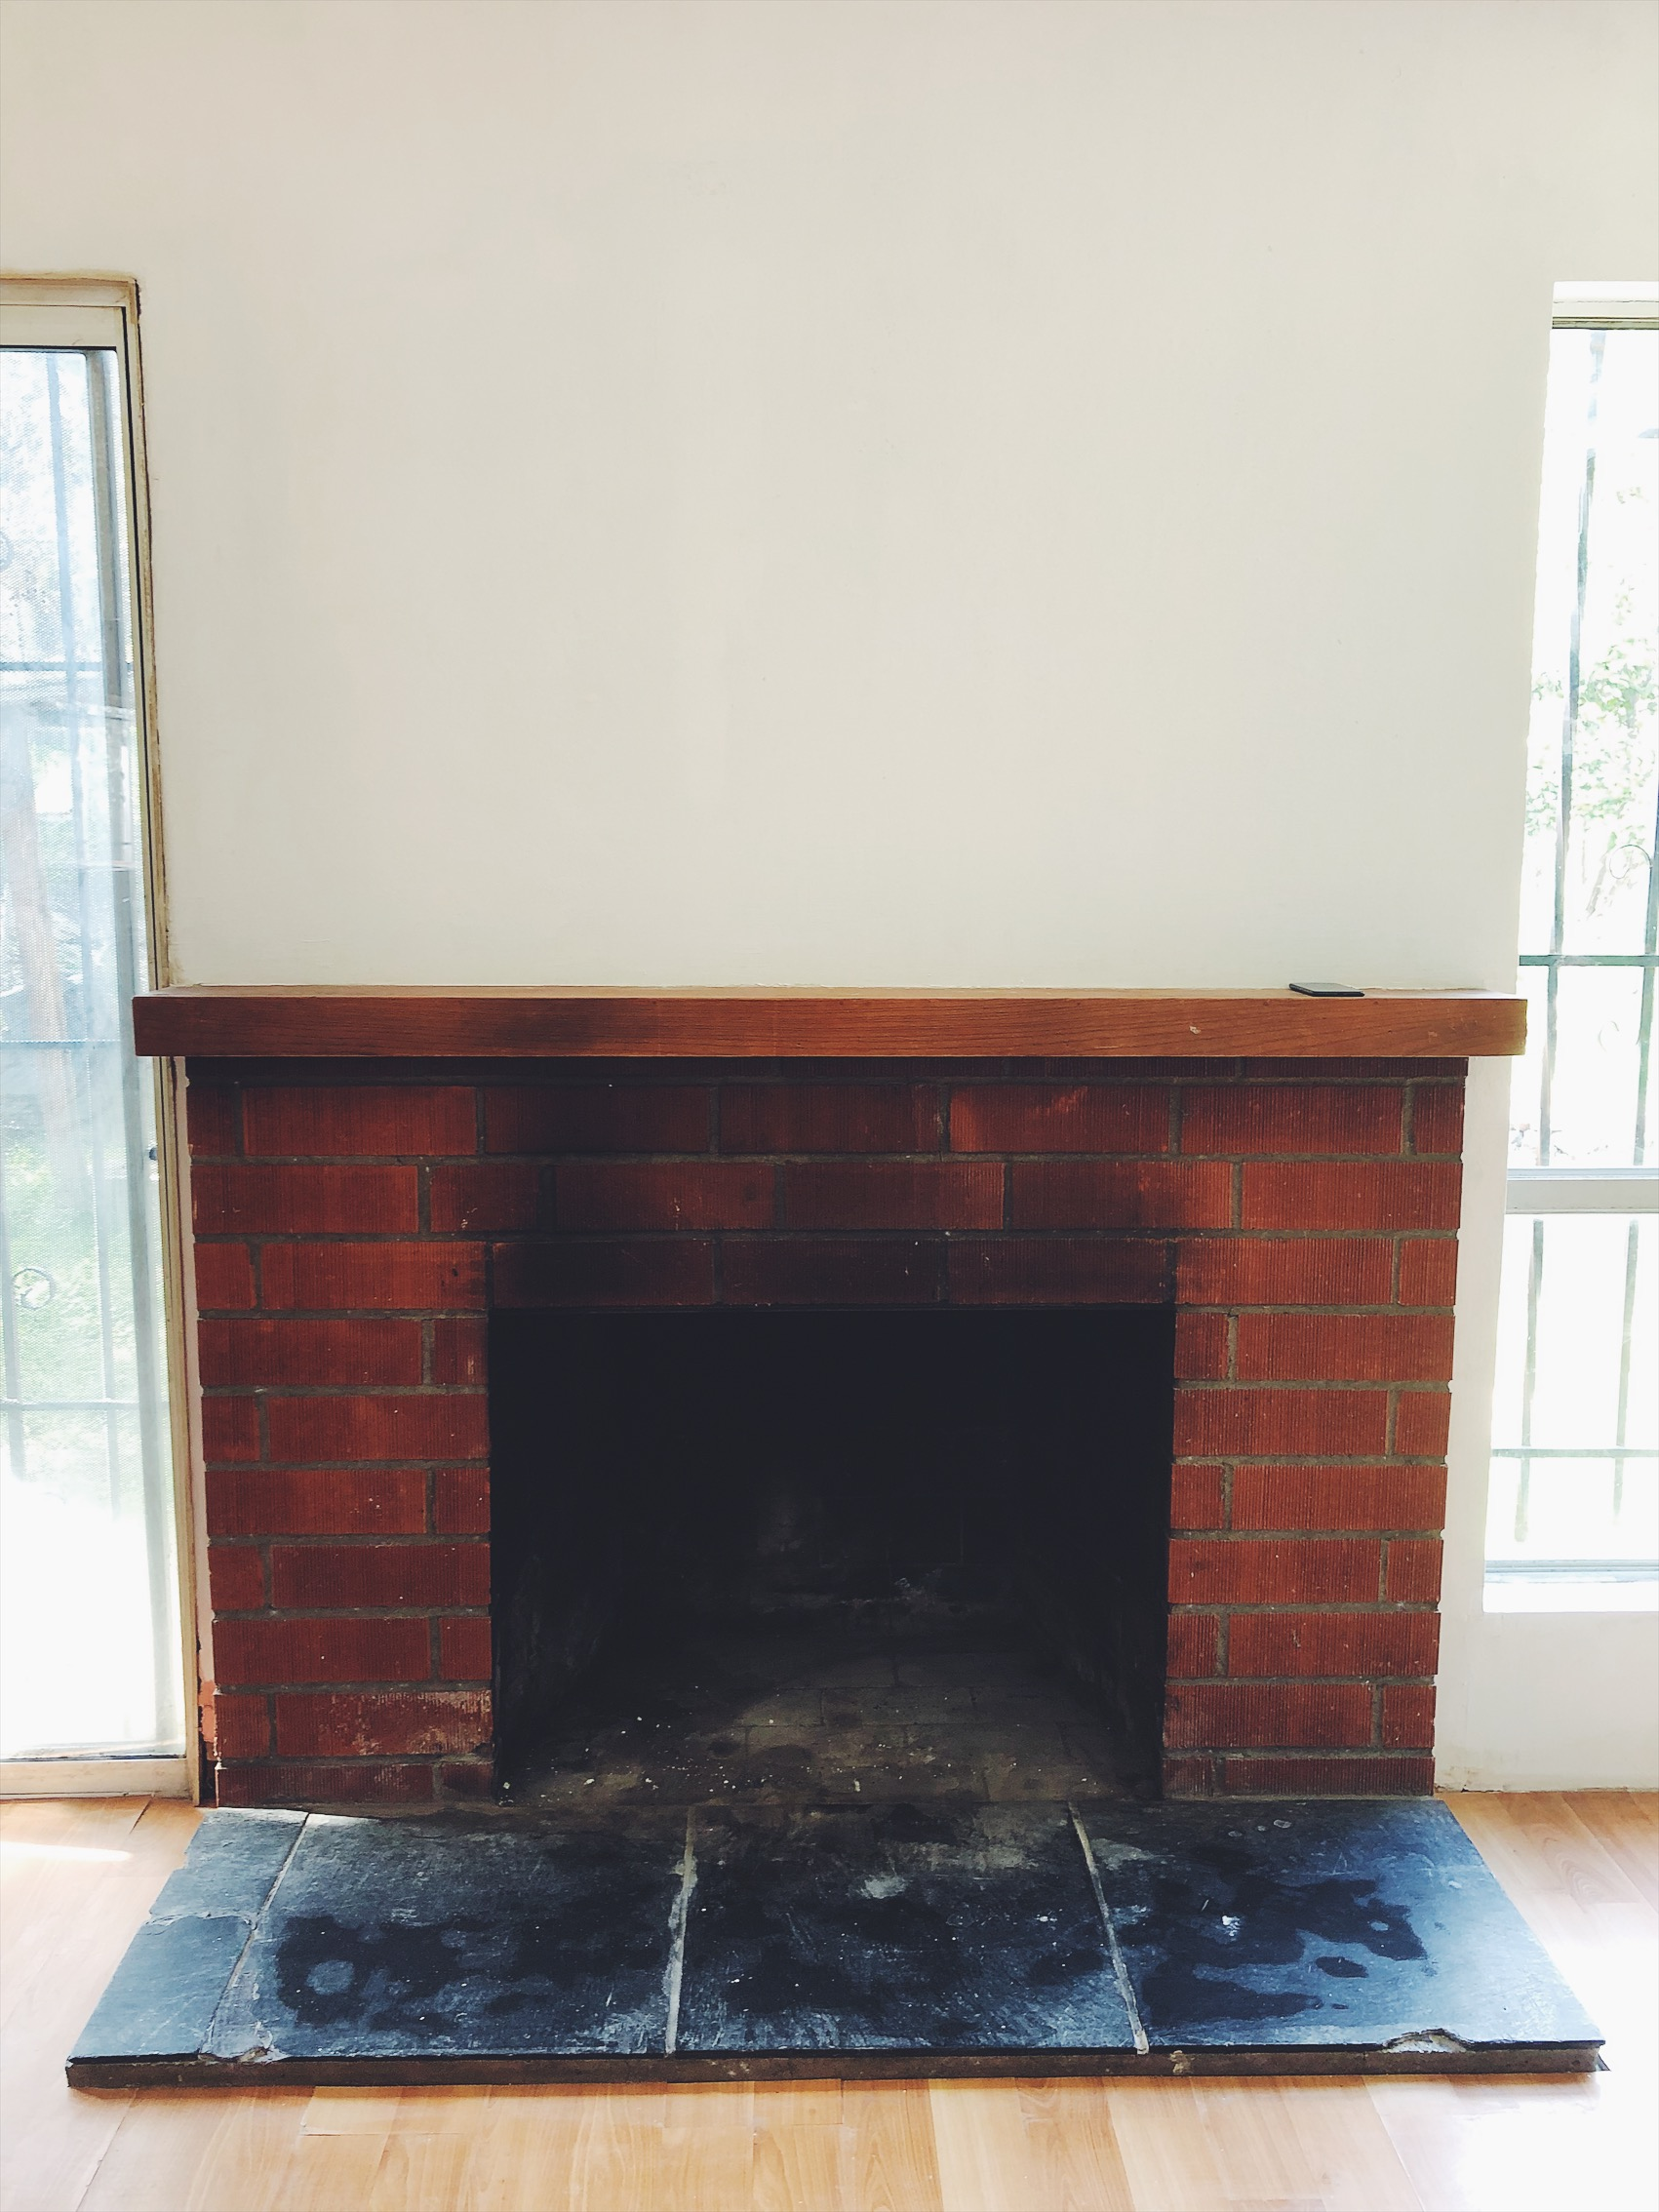 Here's a picture of my fire place with the walls painted white. I'll do a full blog post when the house is done with Before and after photos.